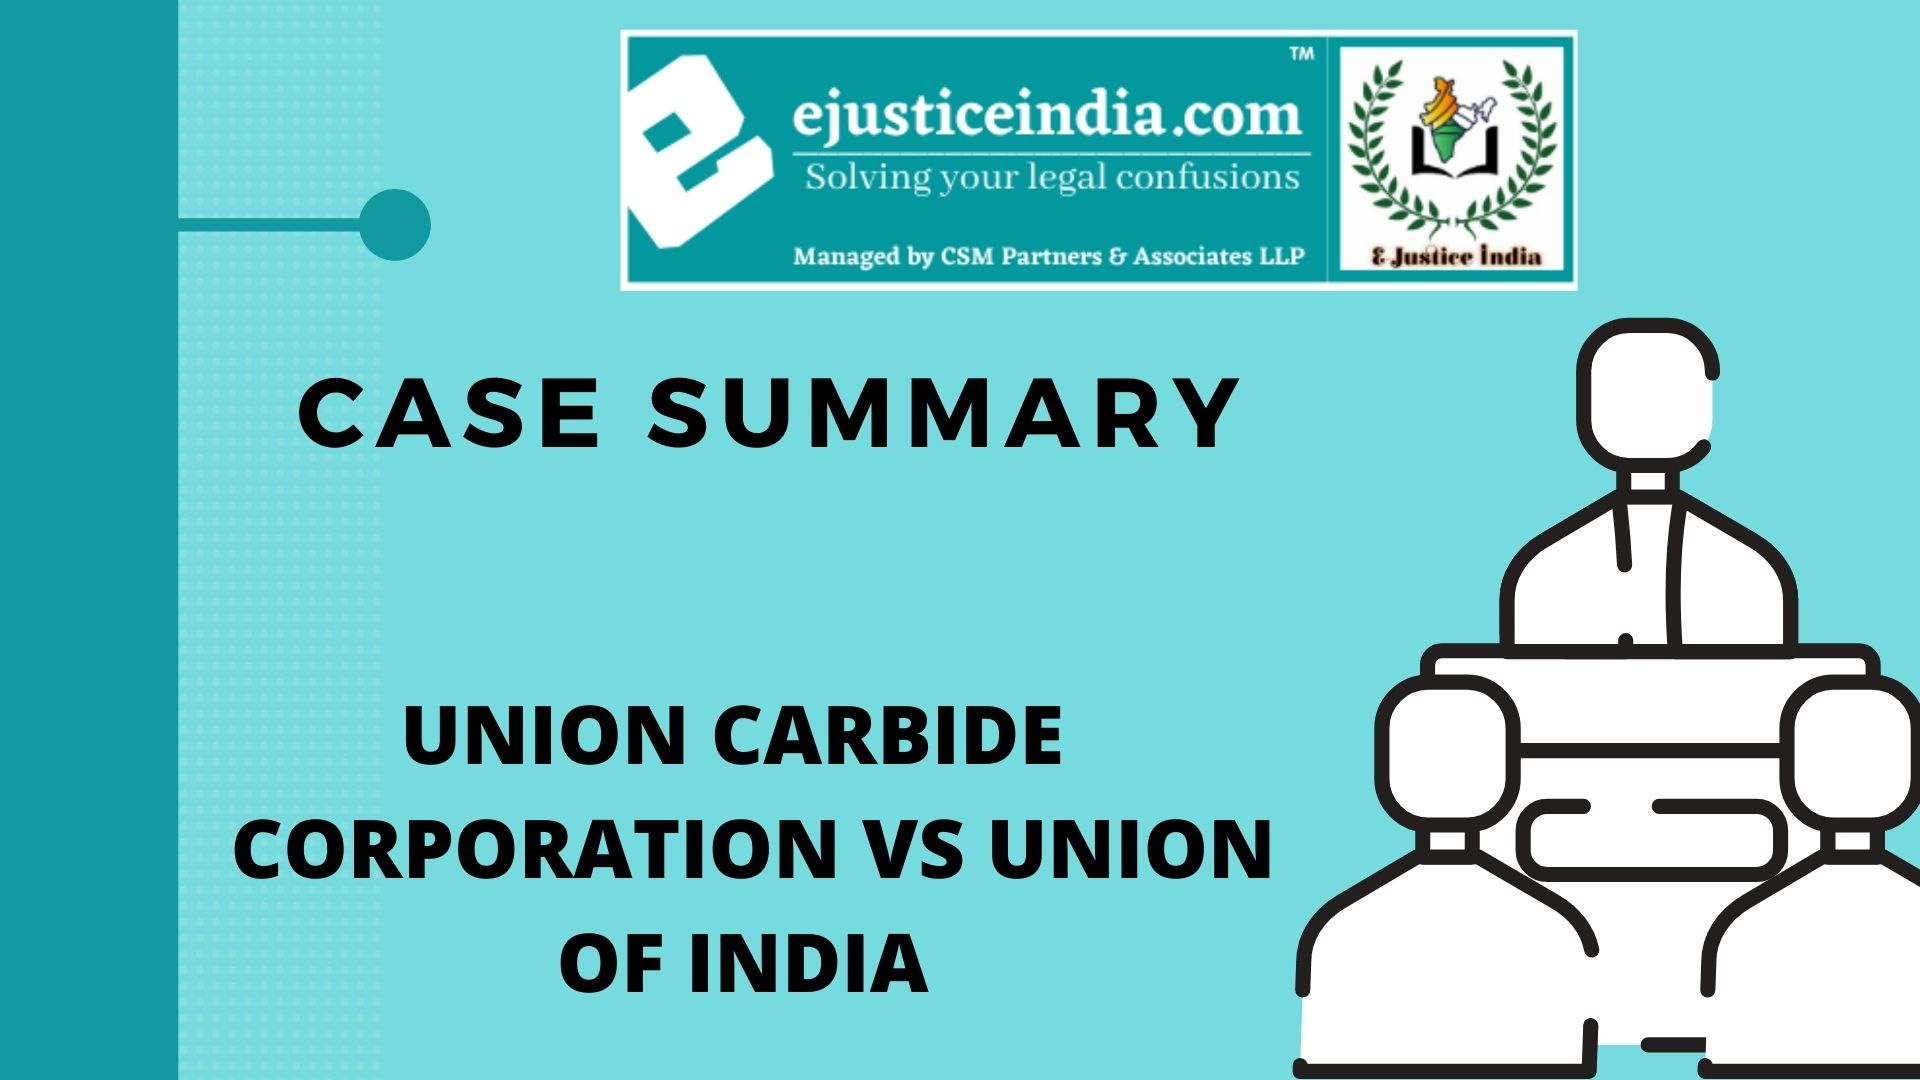 UNION CARBIDE CORPORATION VS UNION OF INDIA